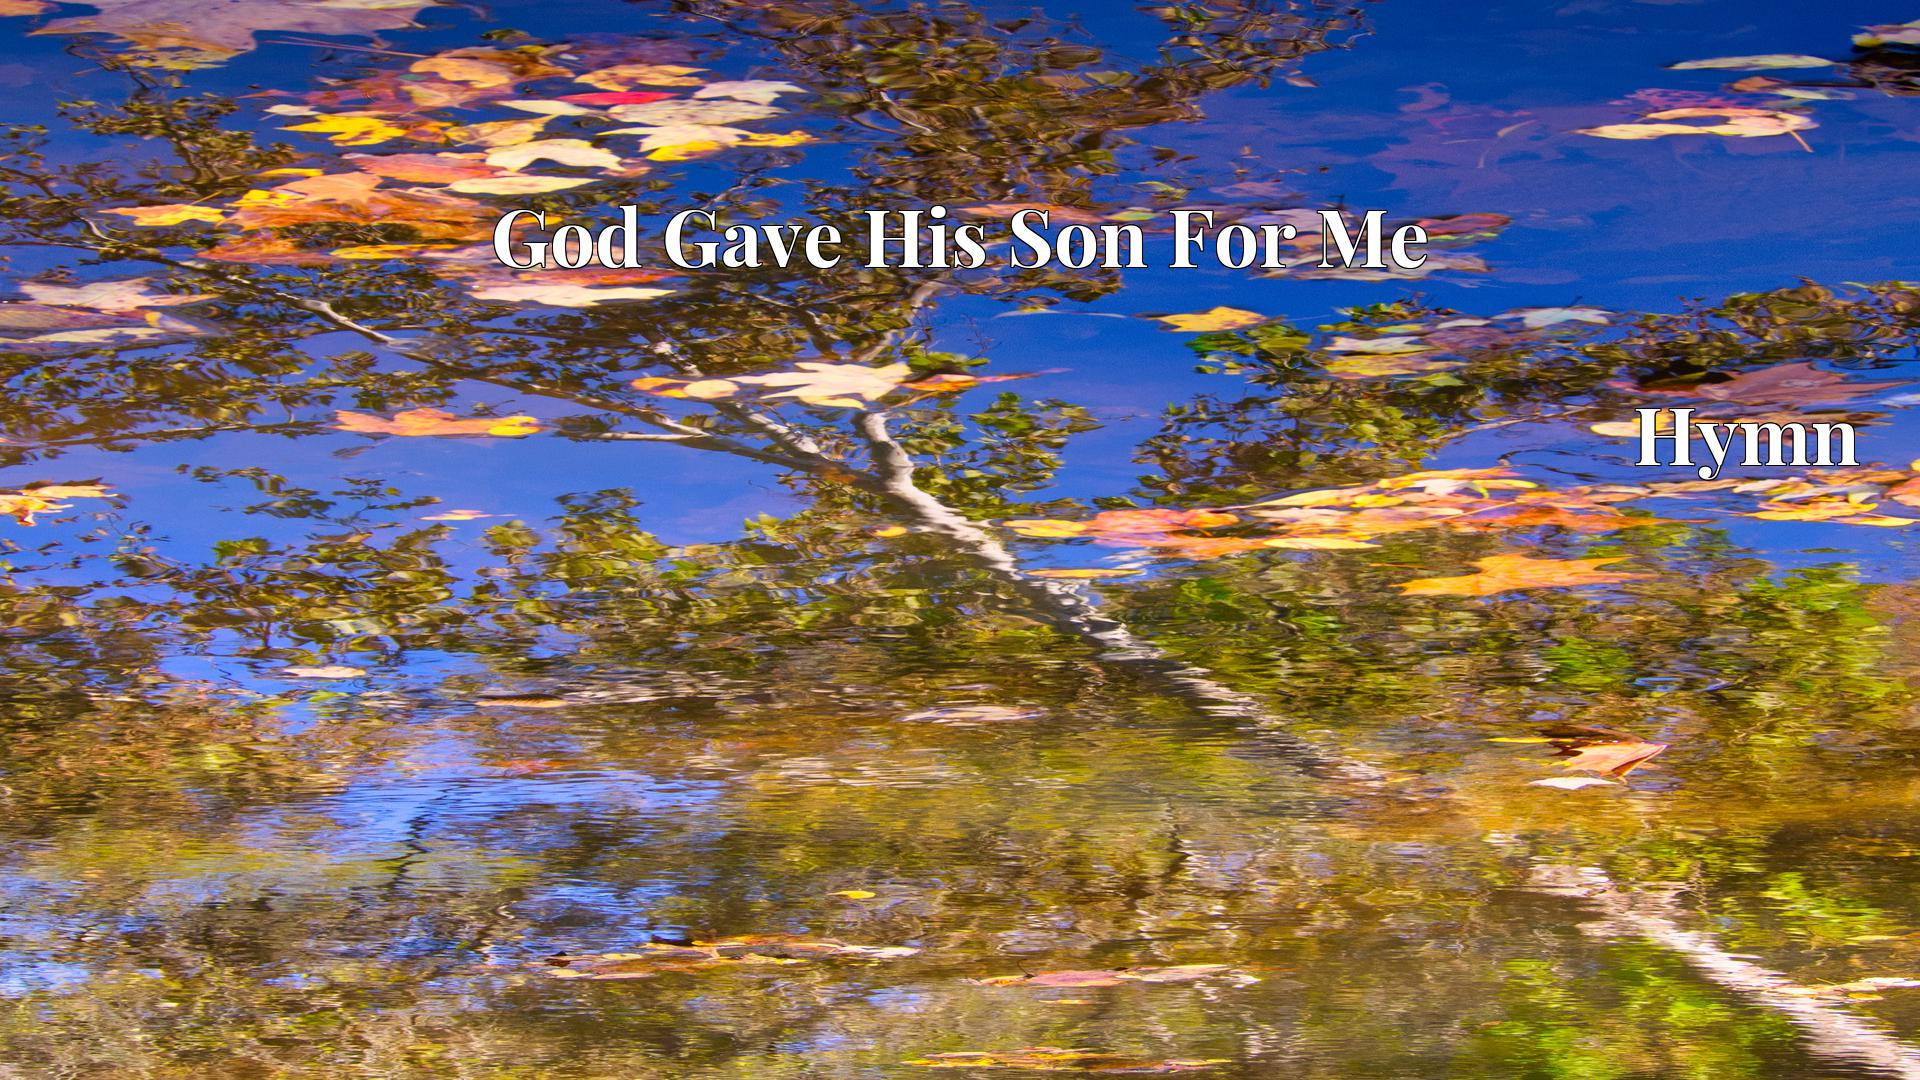 God Gave His Son For Me - Hymn